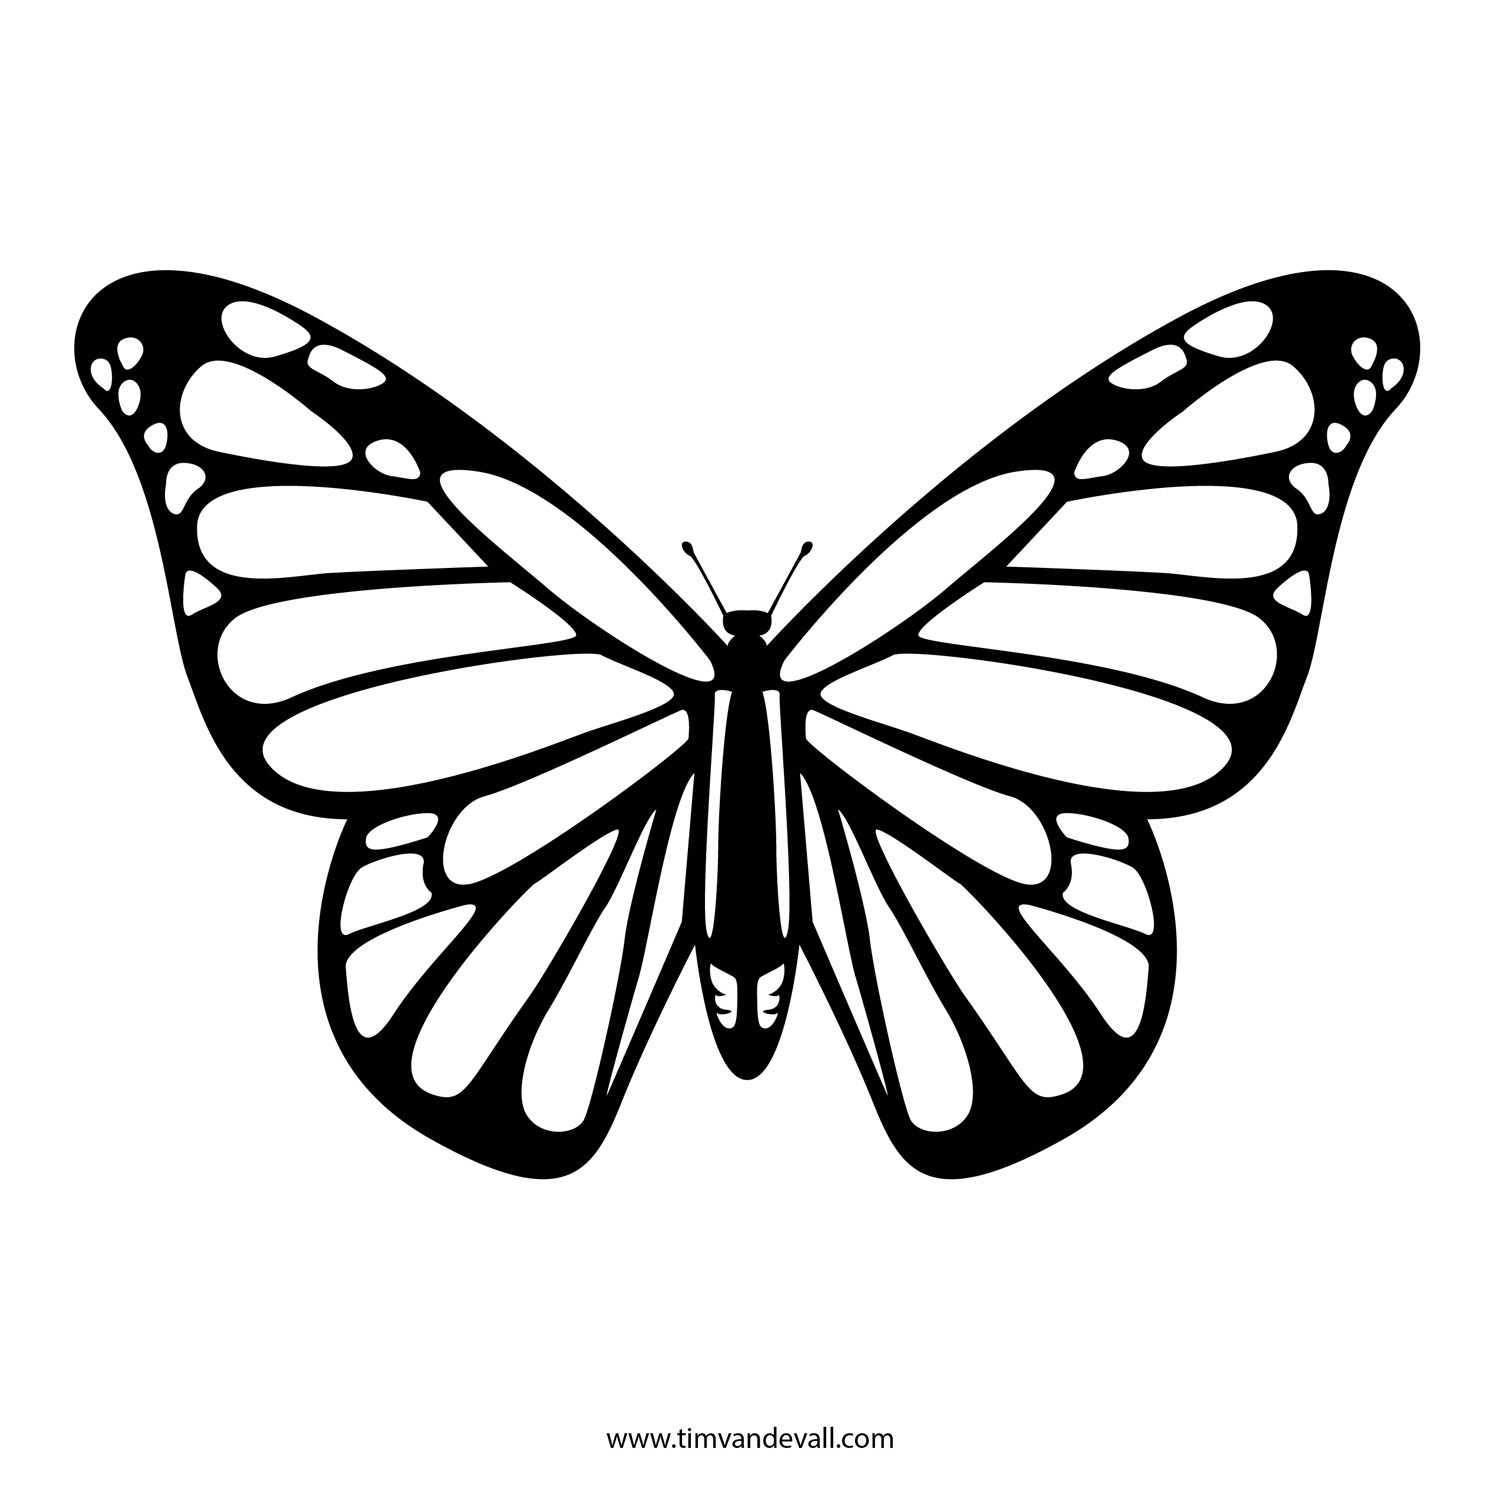 1500x1500 Monarch Butterfly Line Drawing Flying Monarch Butterfly Tattoo